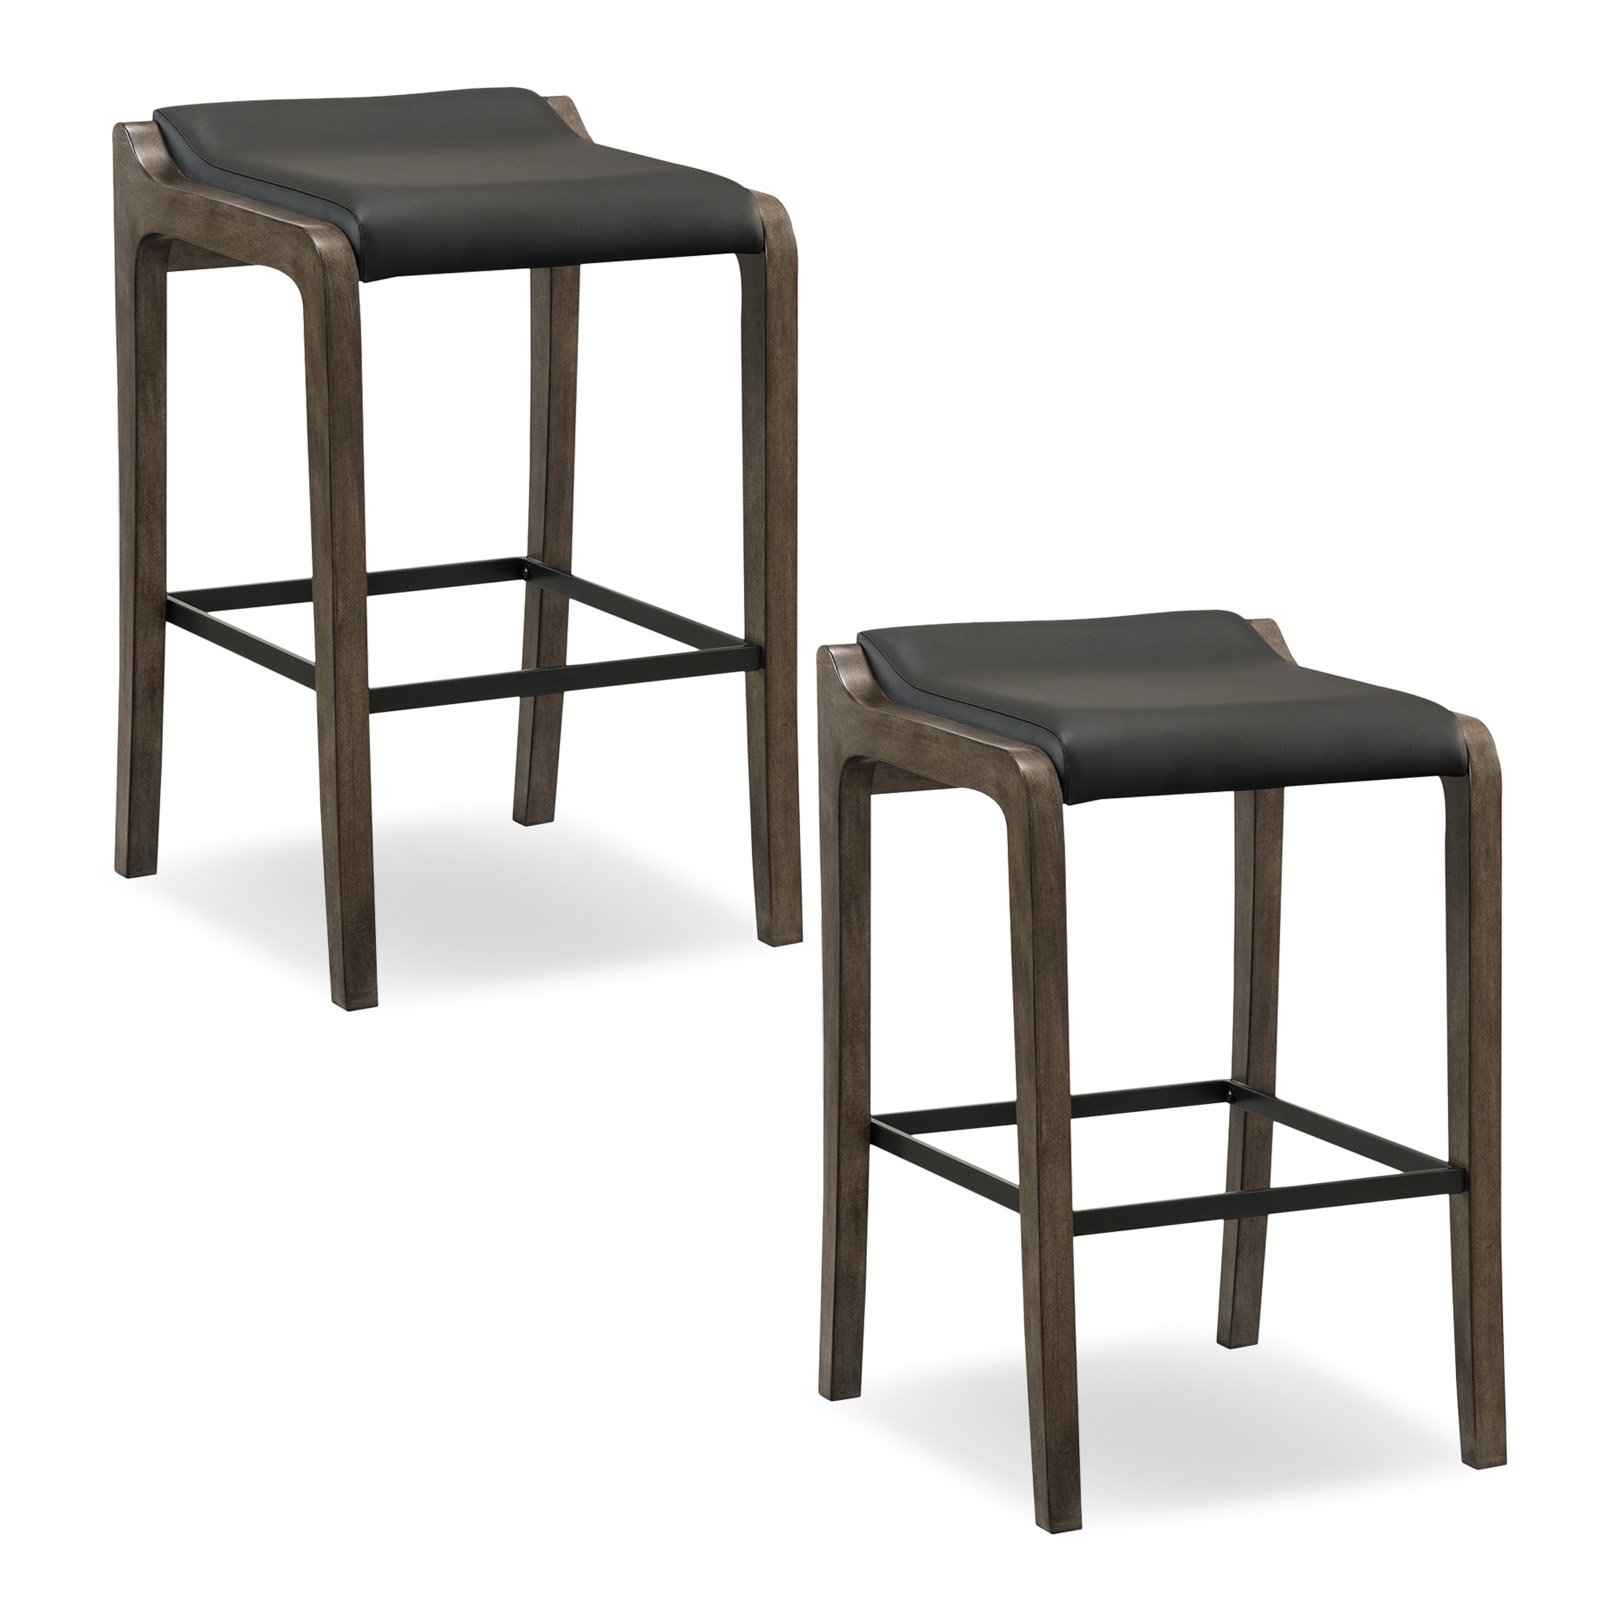 Leick Home Graystone Wood Fastback Bar Height Stool with Faux Leather Seat, Set of 2, Multiple Colors